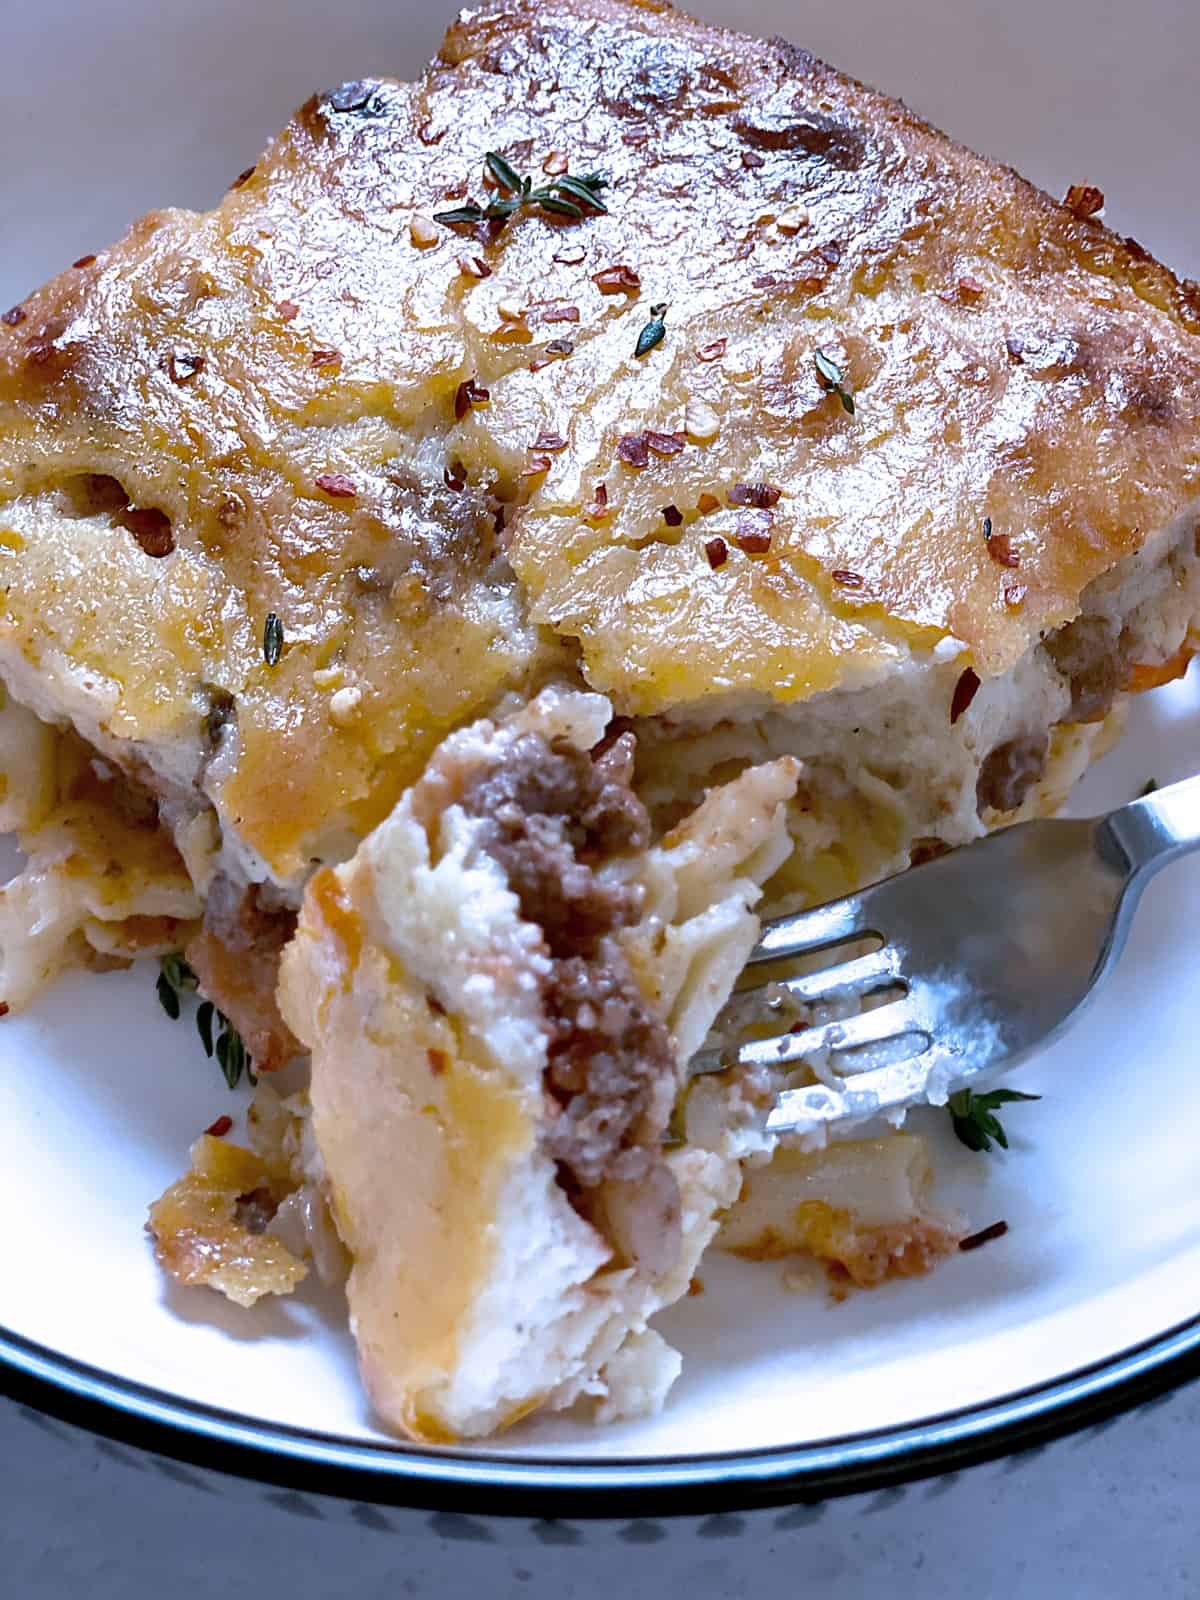 Apiece of Pastitsio and a fork.